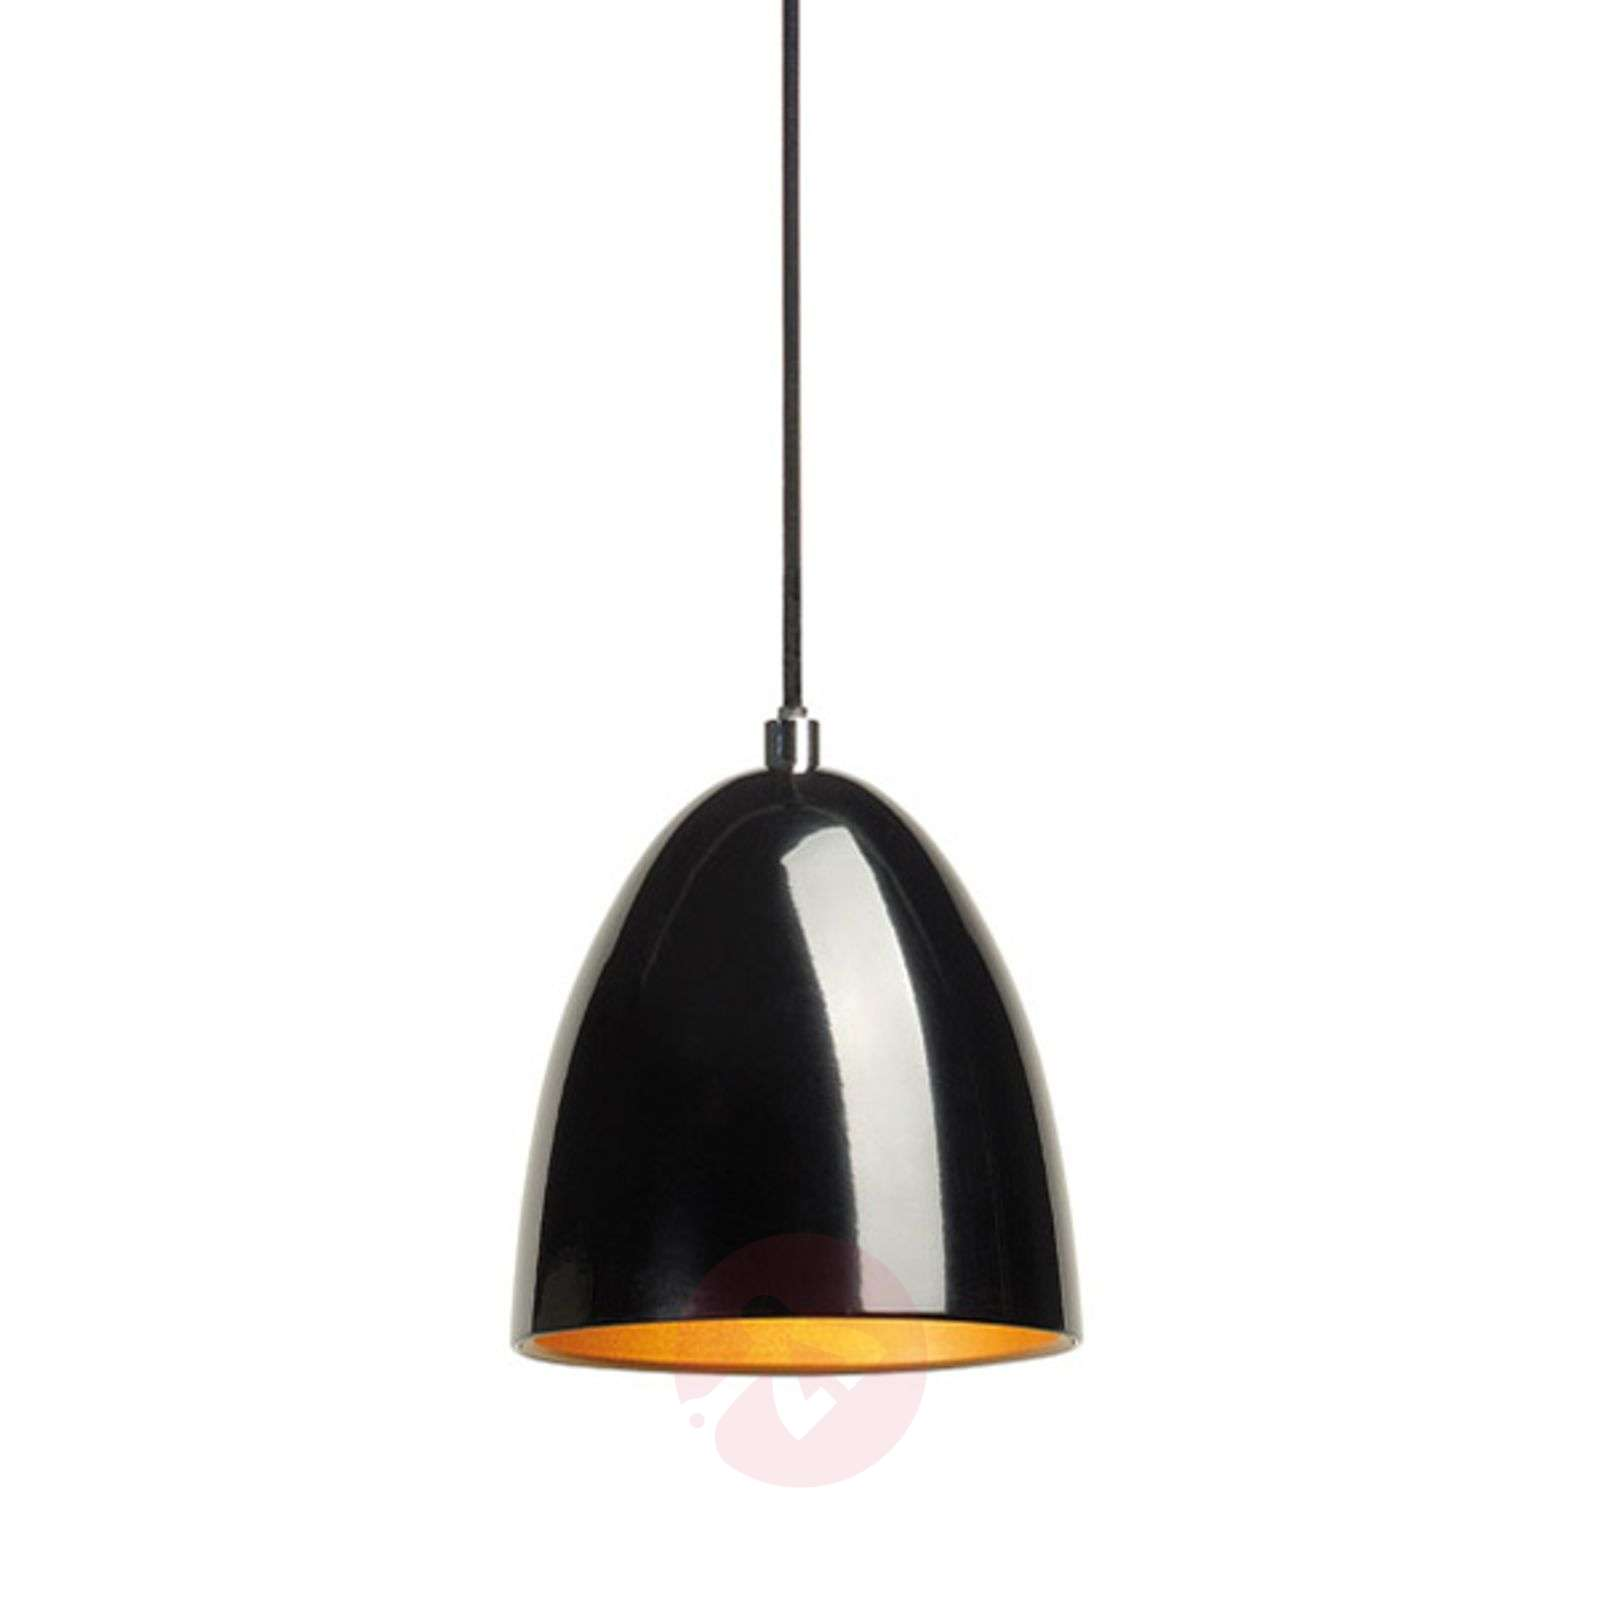 eu pendant lights plastra cone slv light